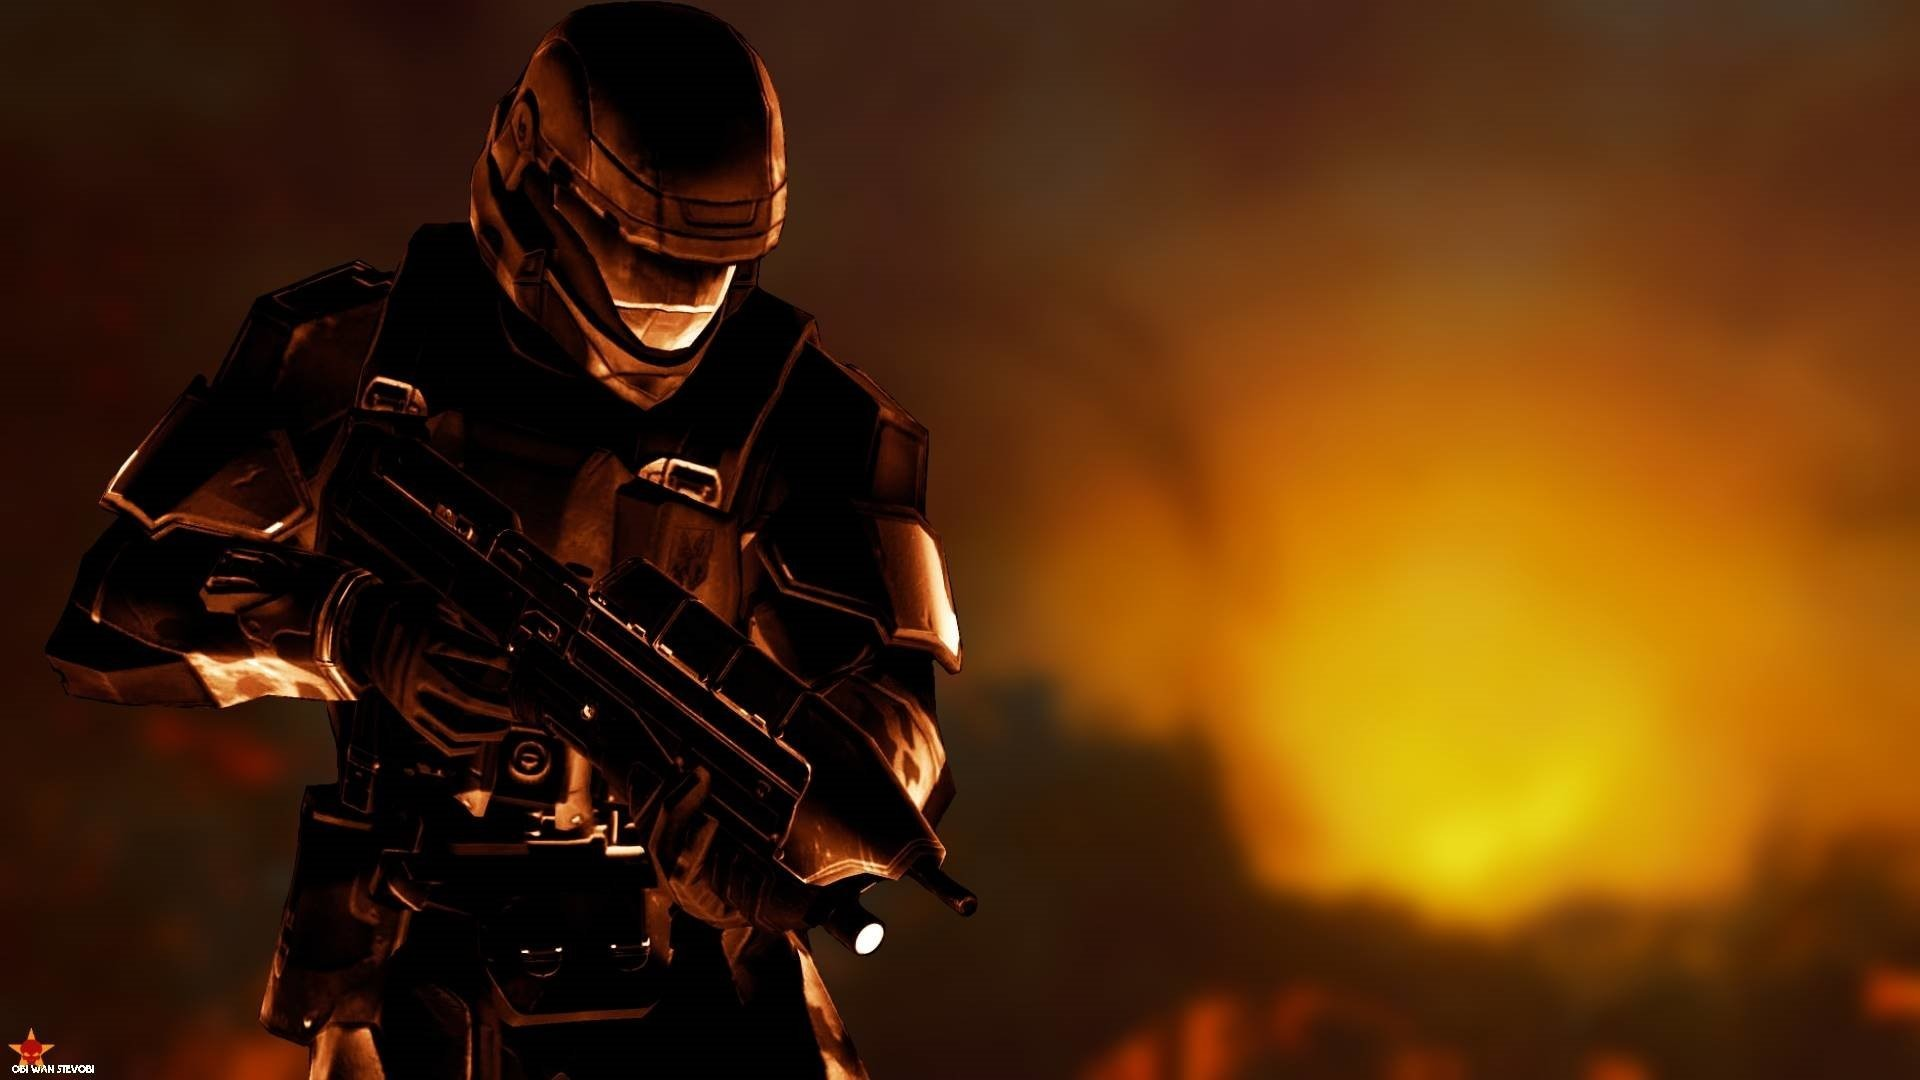 Halo 3 Odst Wallpapers 81 Pictures